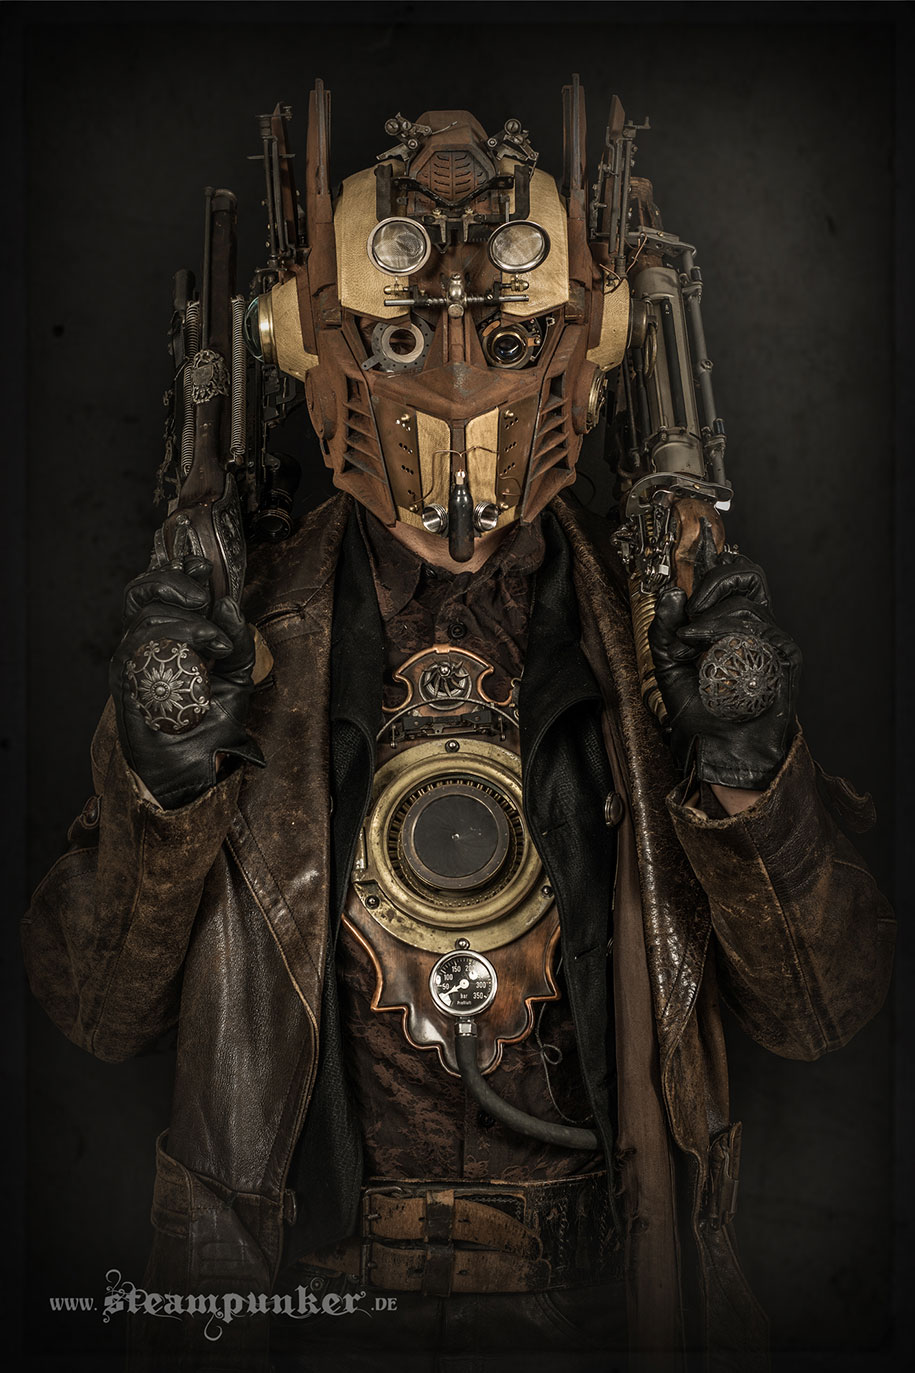 cosplay-costumes-steampunk-art-armor-clothing-alexander-schlesier-7